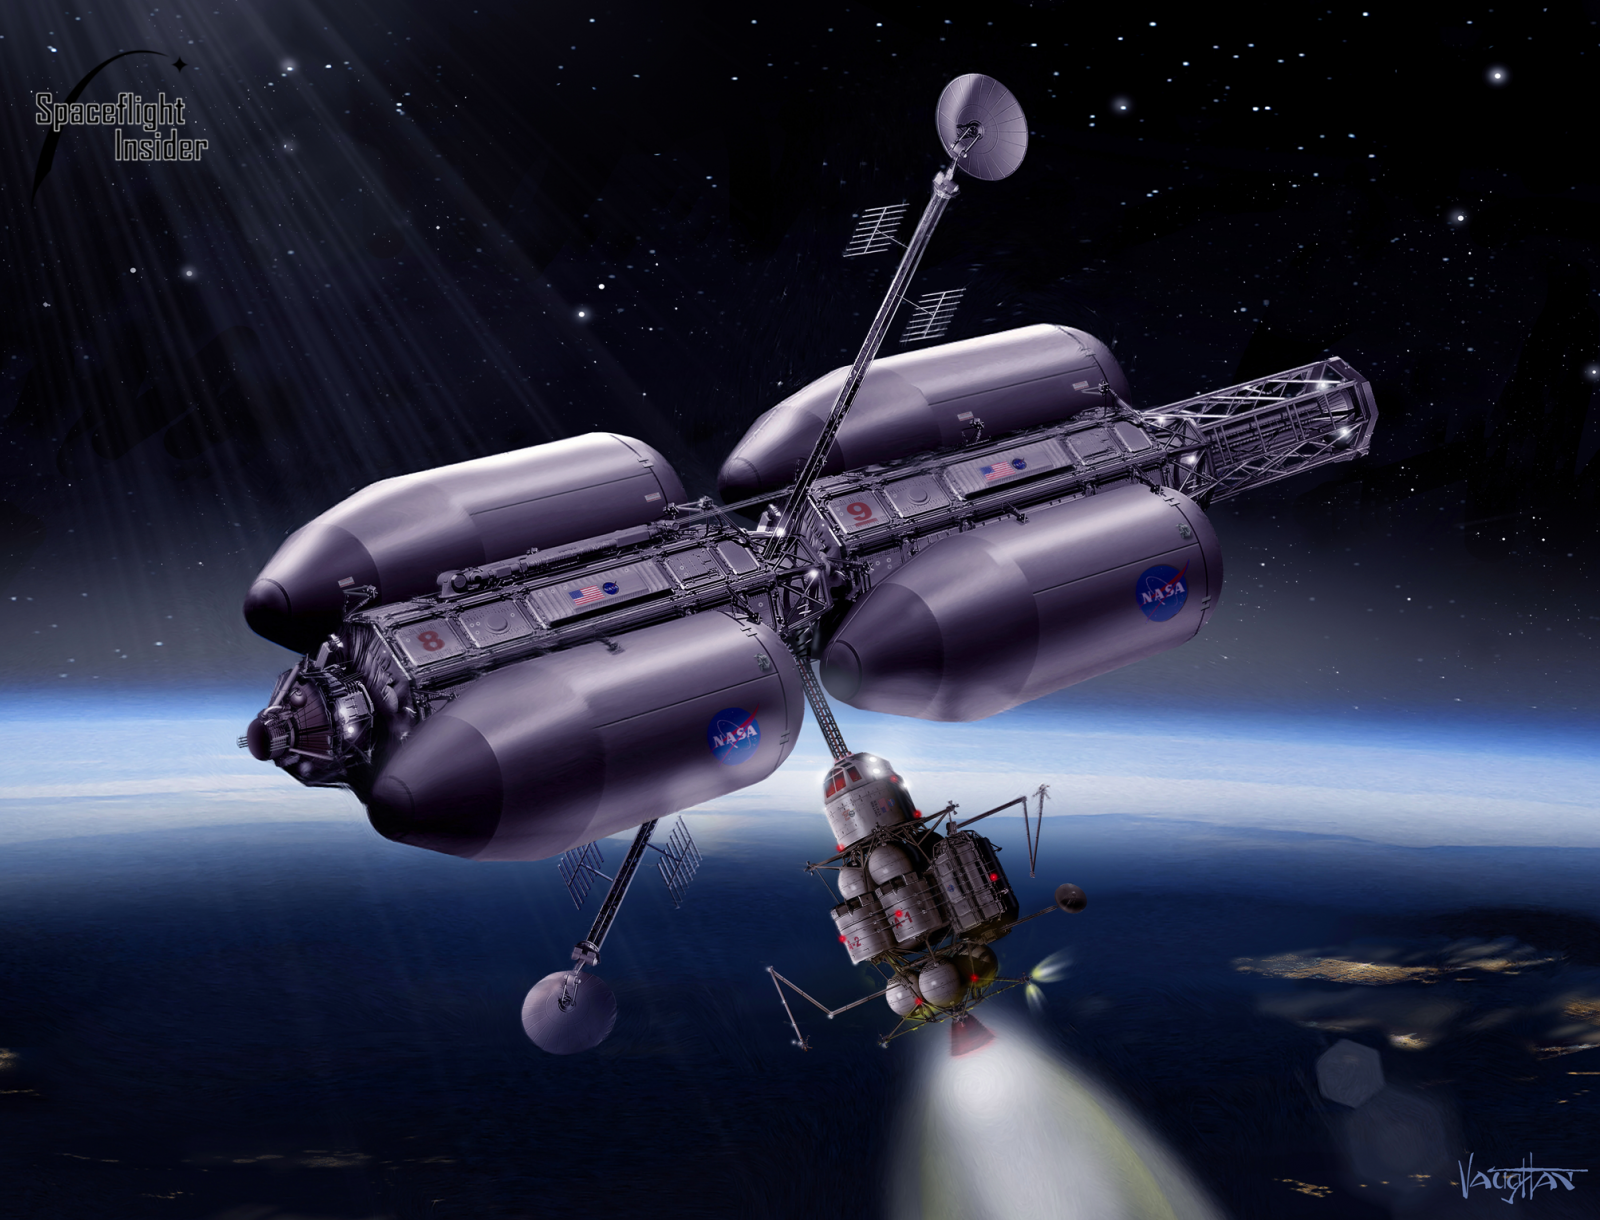 NASA spacecraft depiction